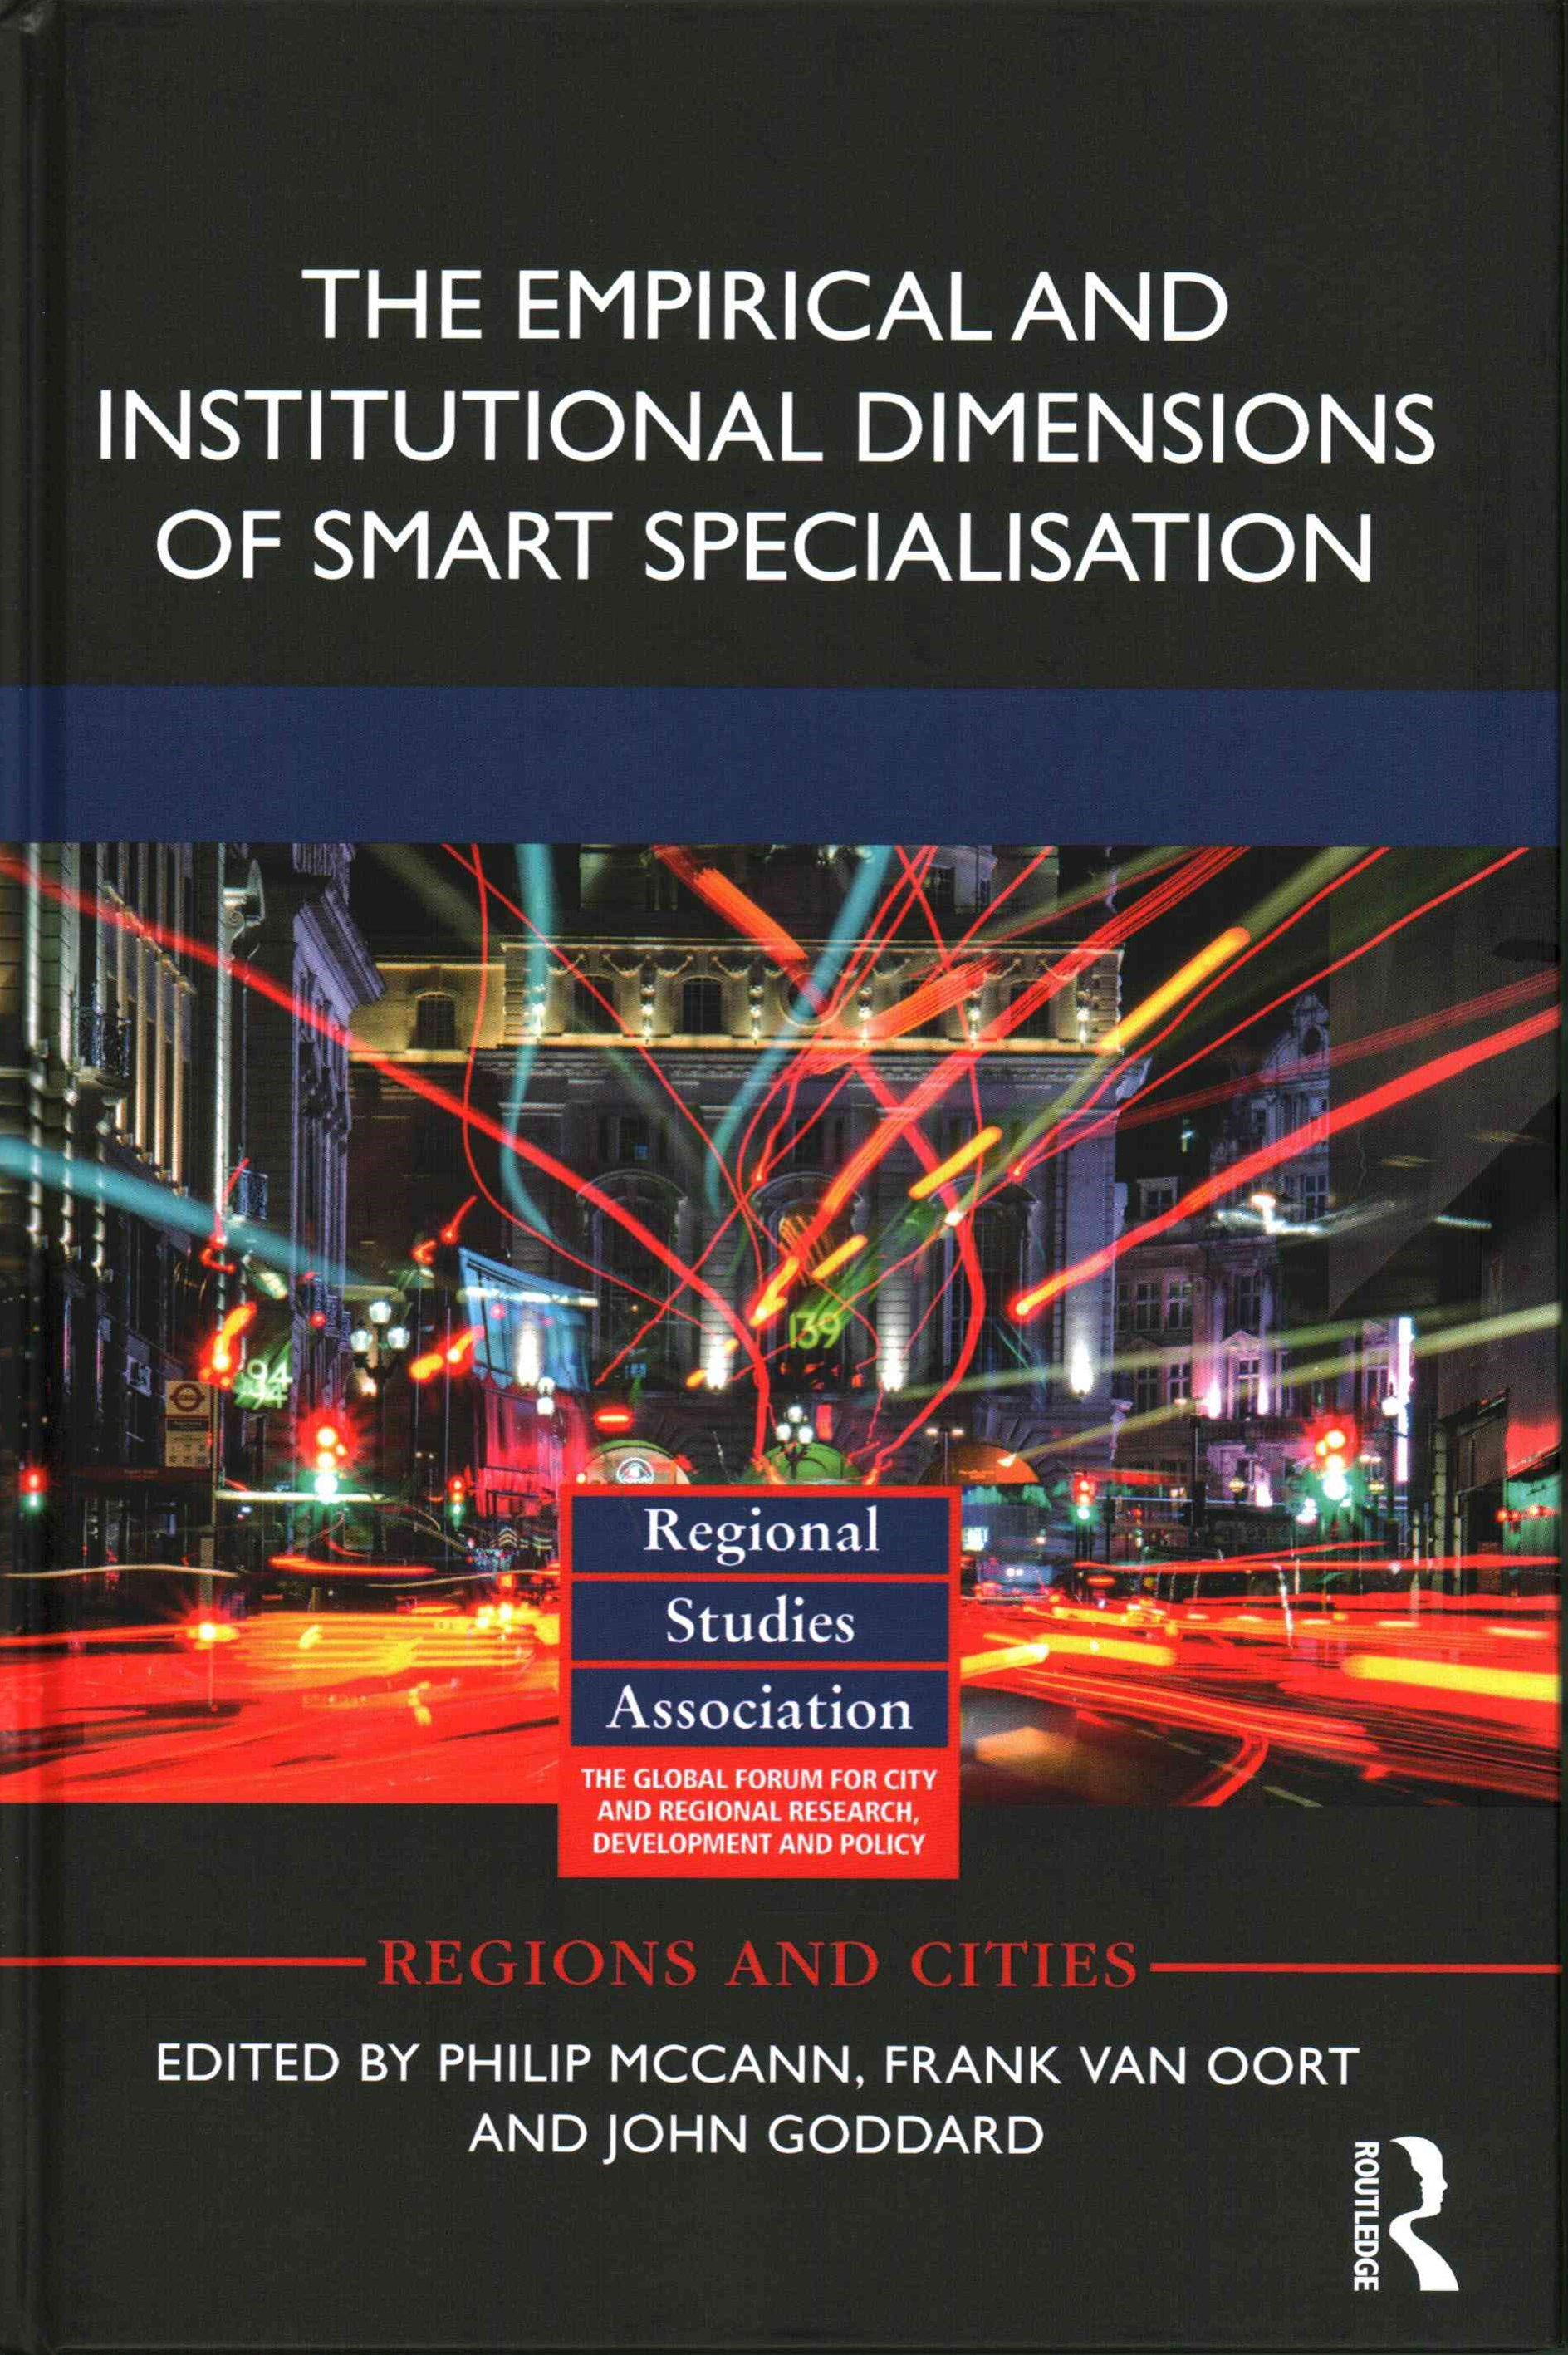 Empirical and Institutional Dimensions of Smart Specialisation